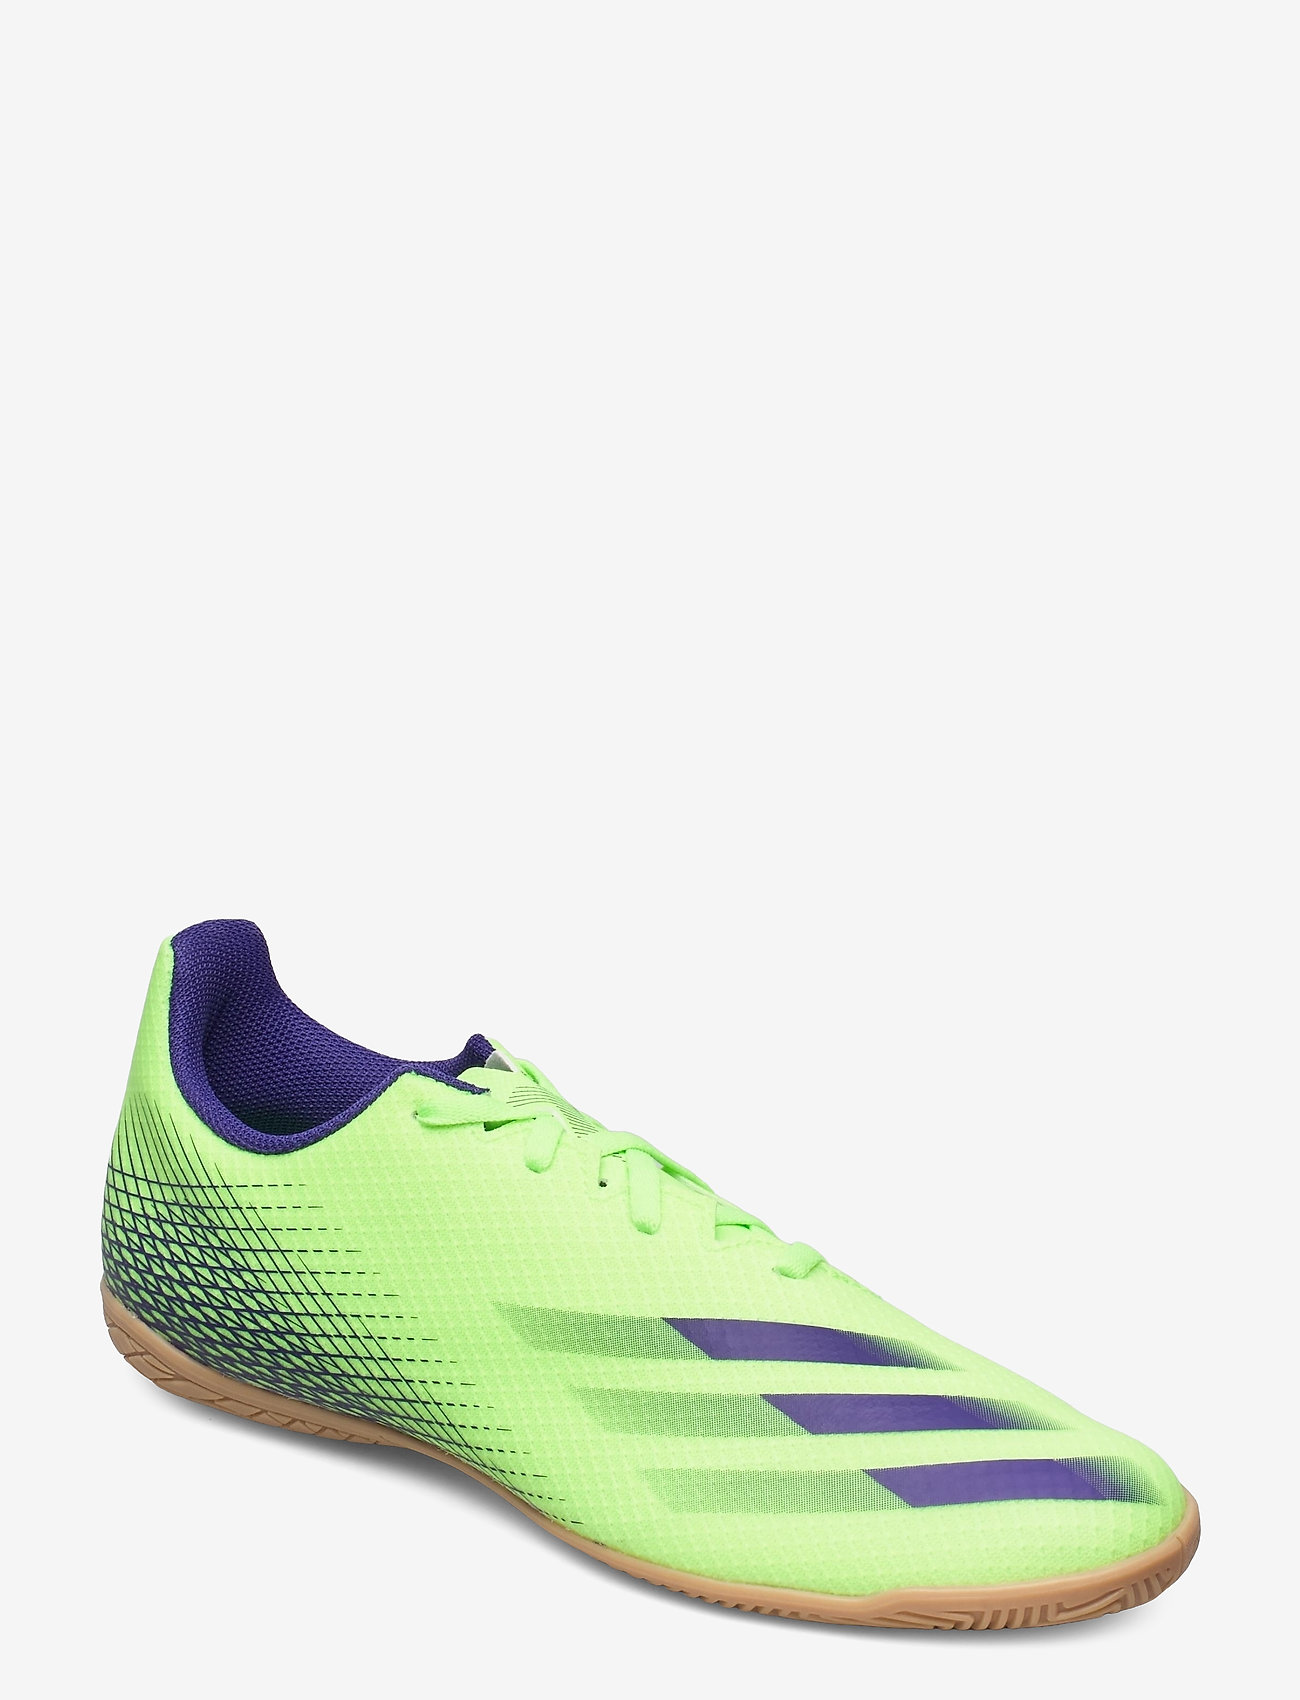 adidas Performance - X GHOSTED.4 IN - fodboldsko - siggnr/eneink/siggnr - 0